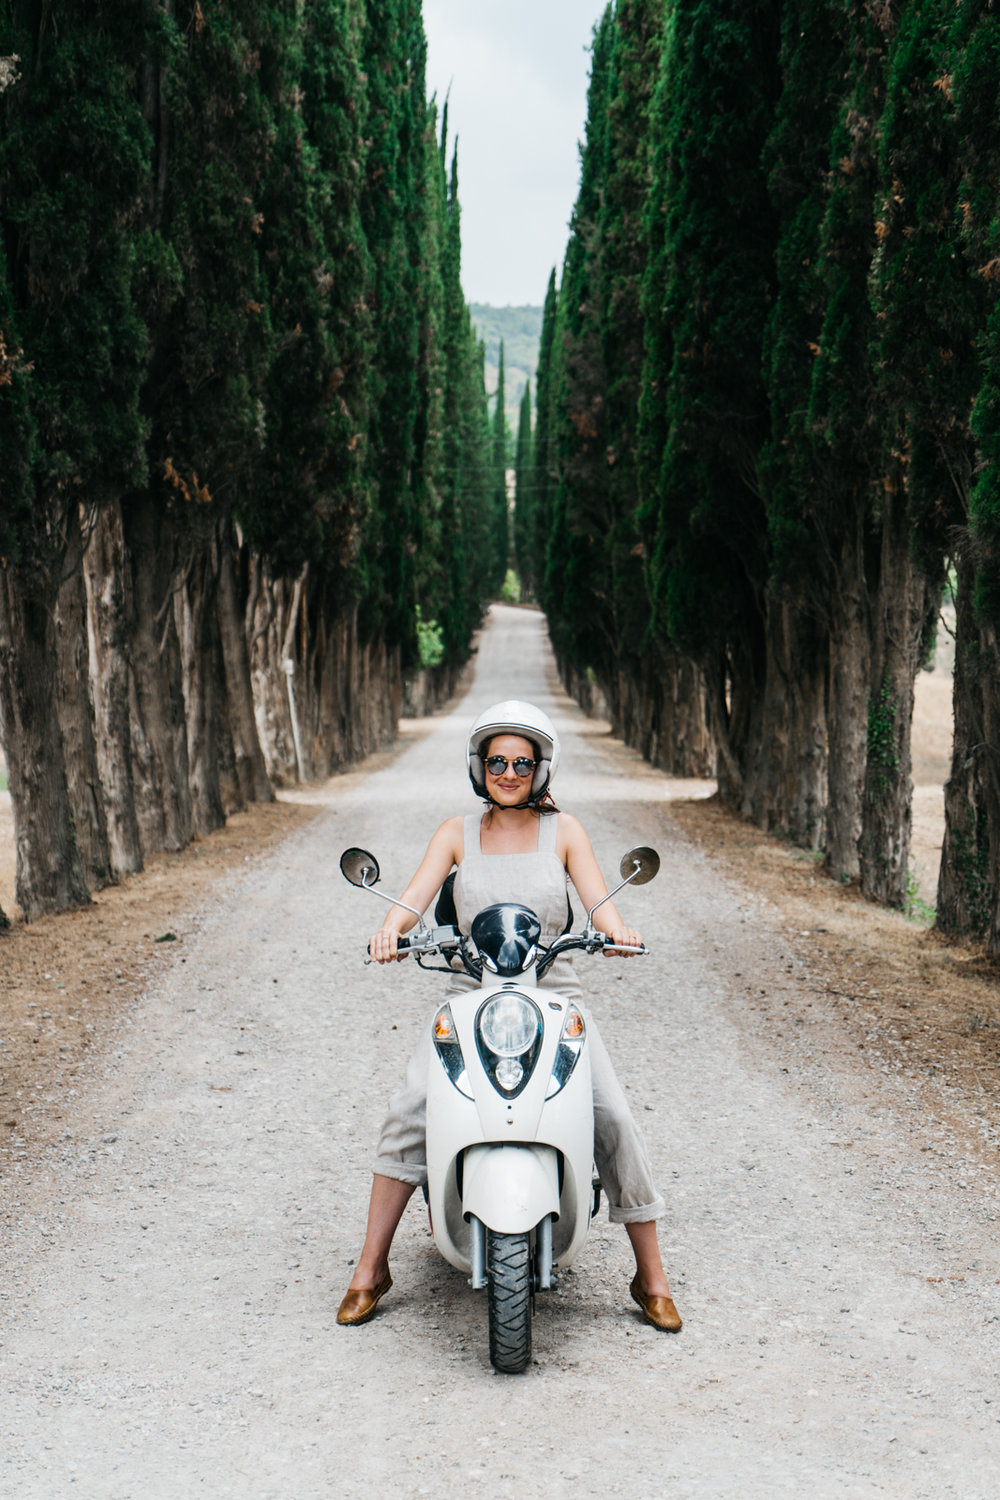 tuscany scooter rental italy